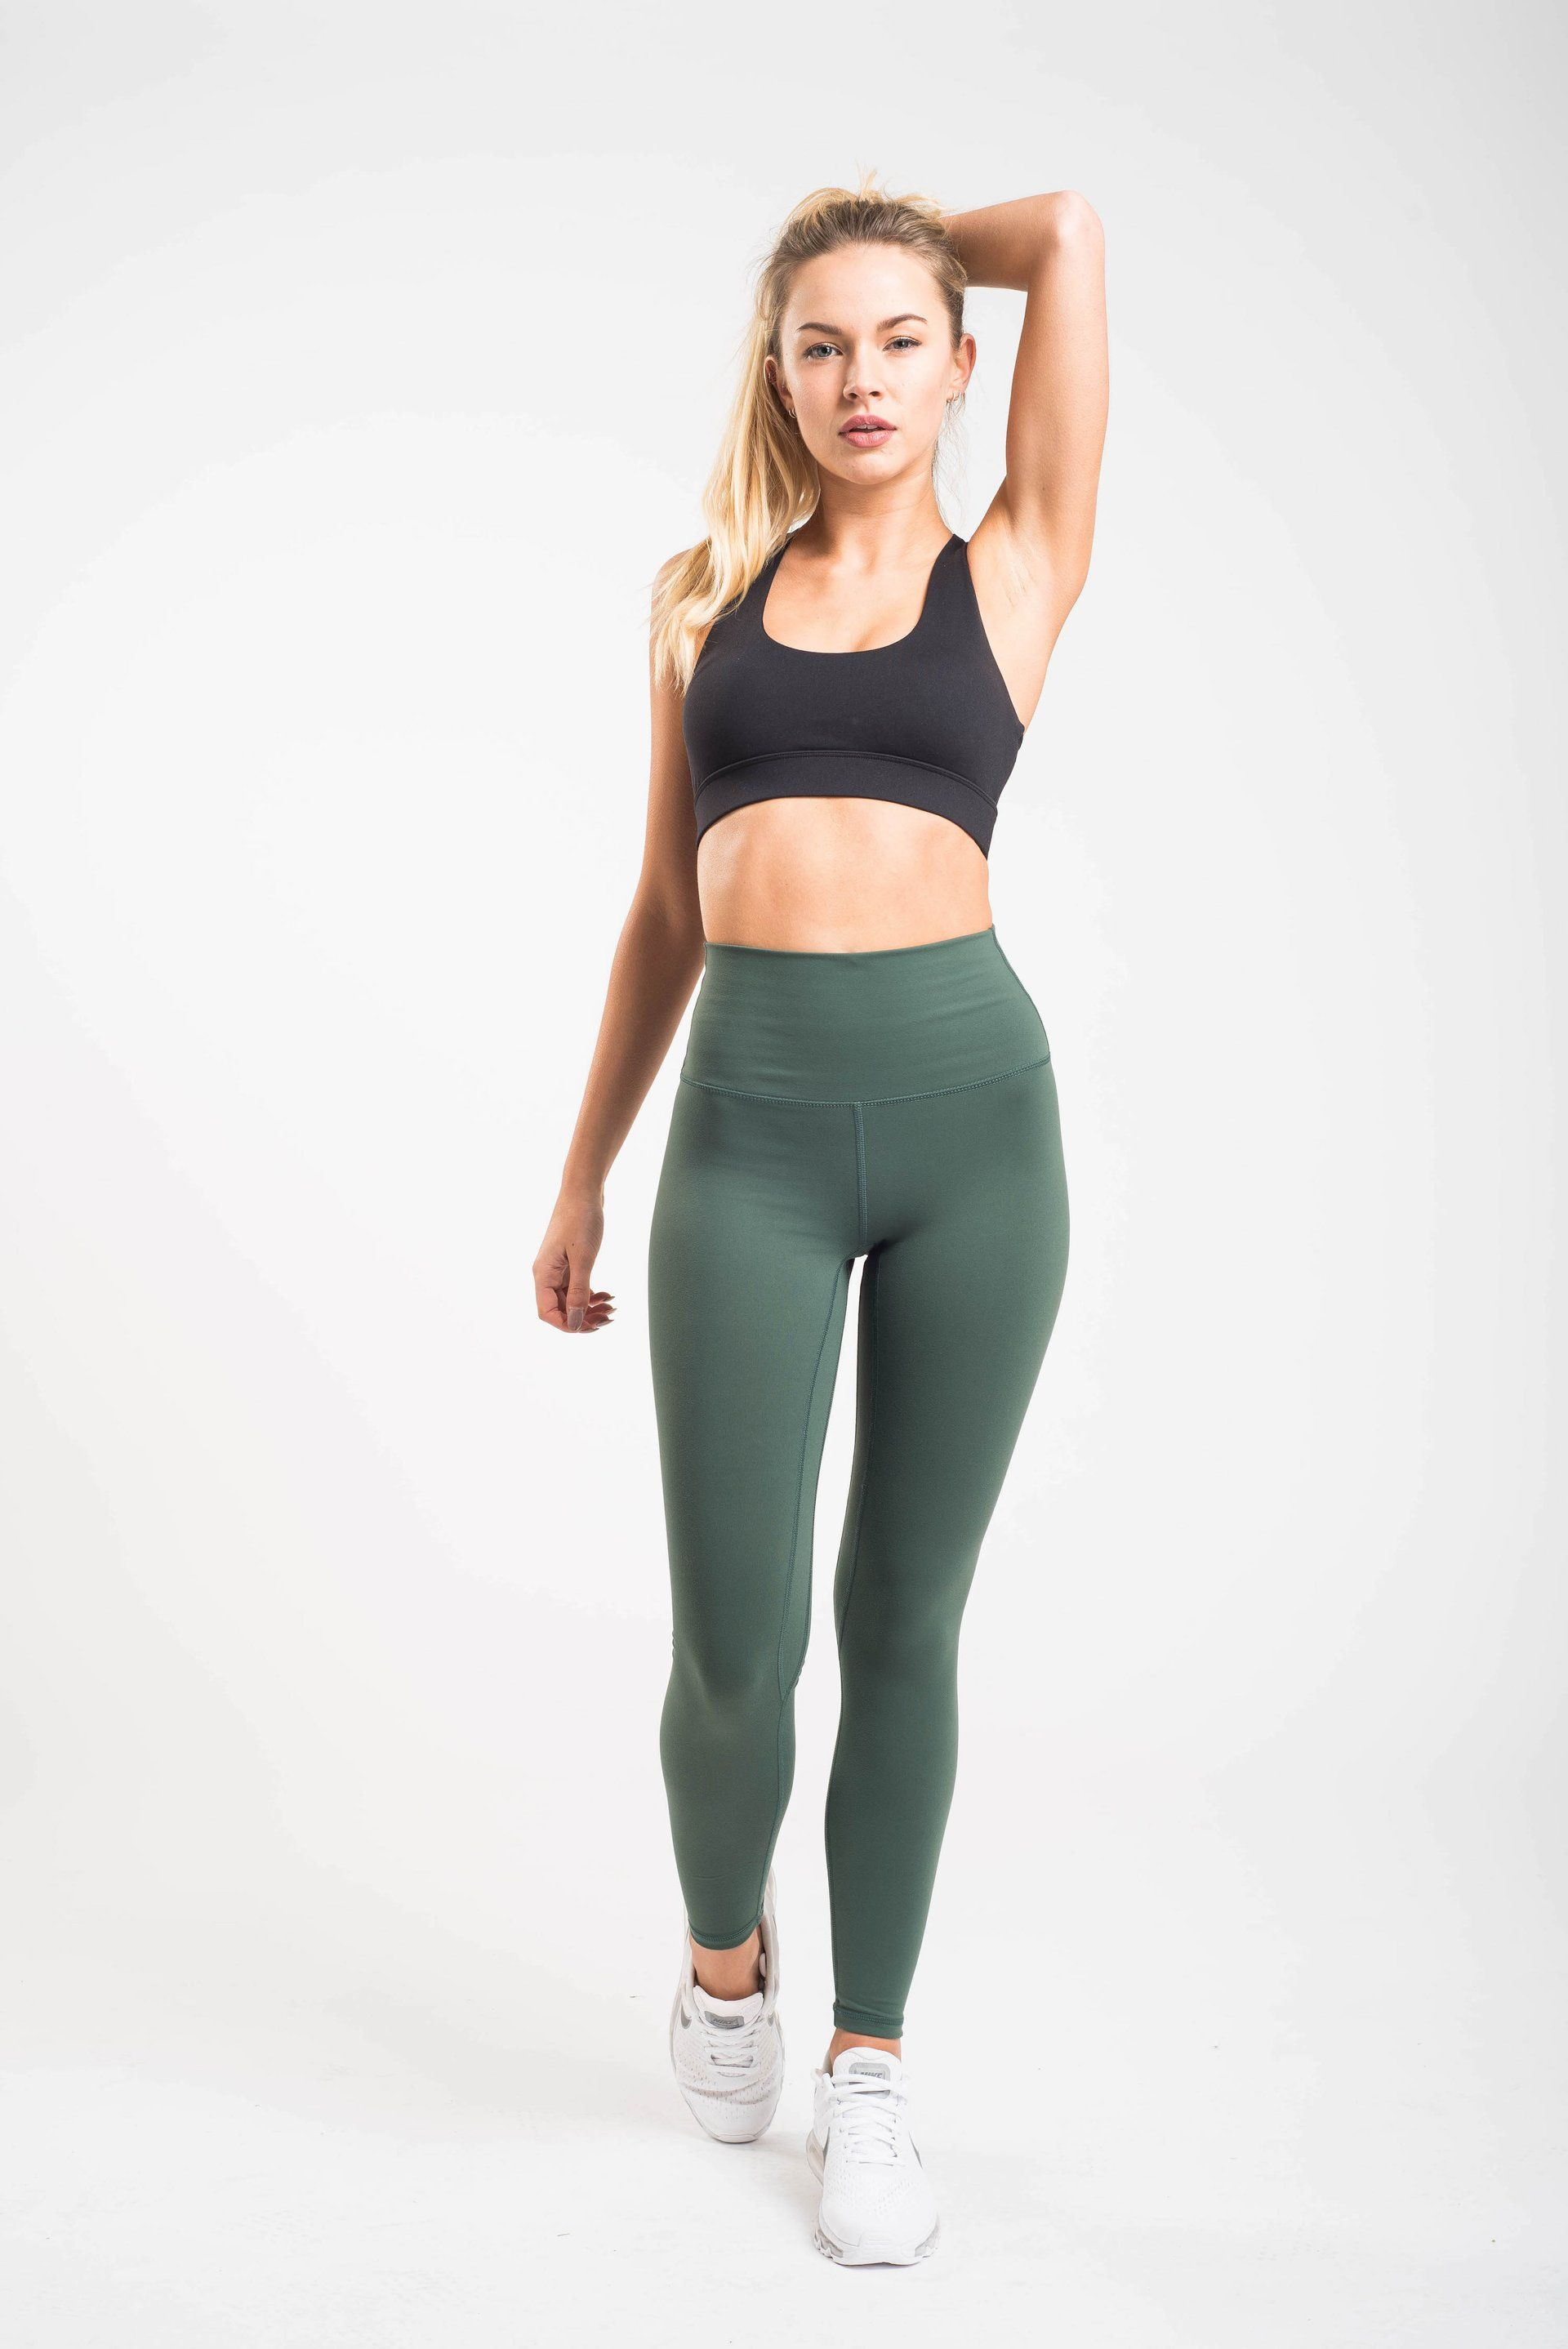 e25199d3f9 Luxe Leggings - Sage Green flexxfit £25 | Fitness Shop in 2019 ...